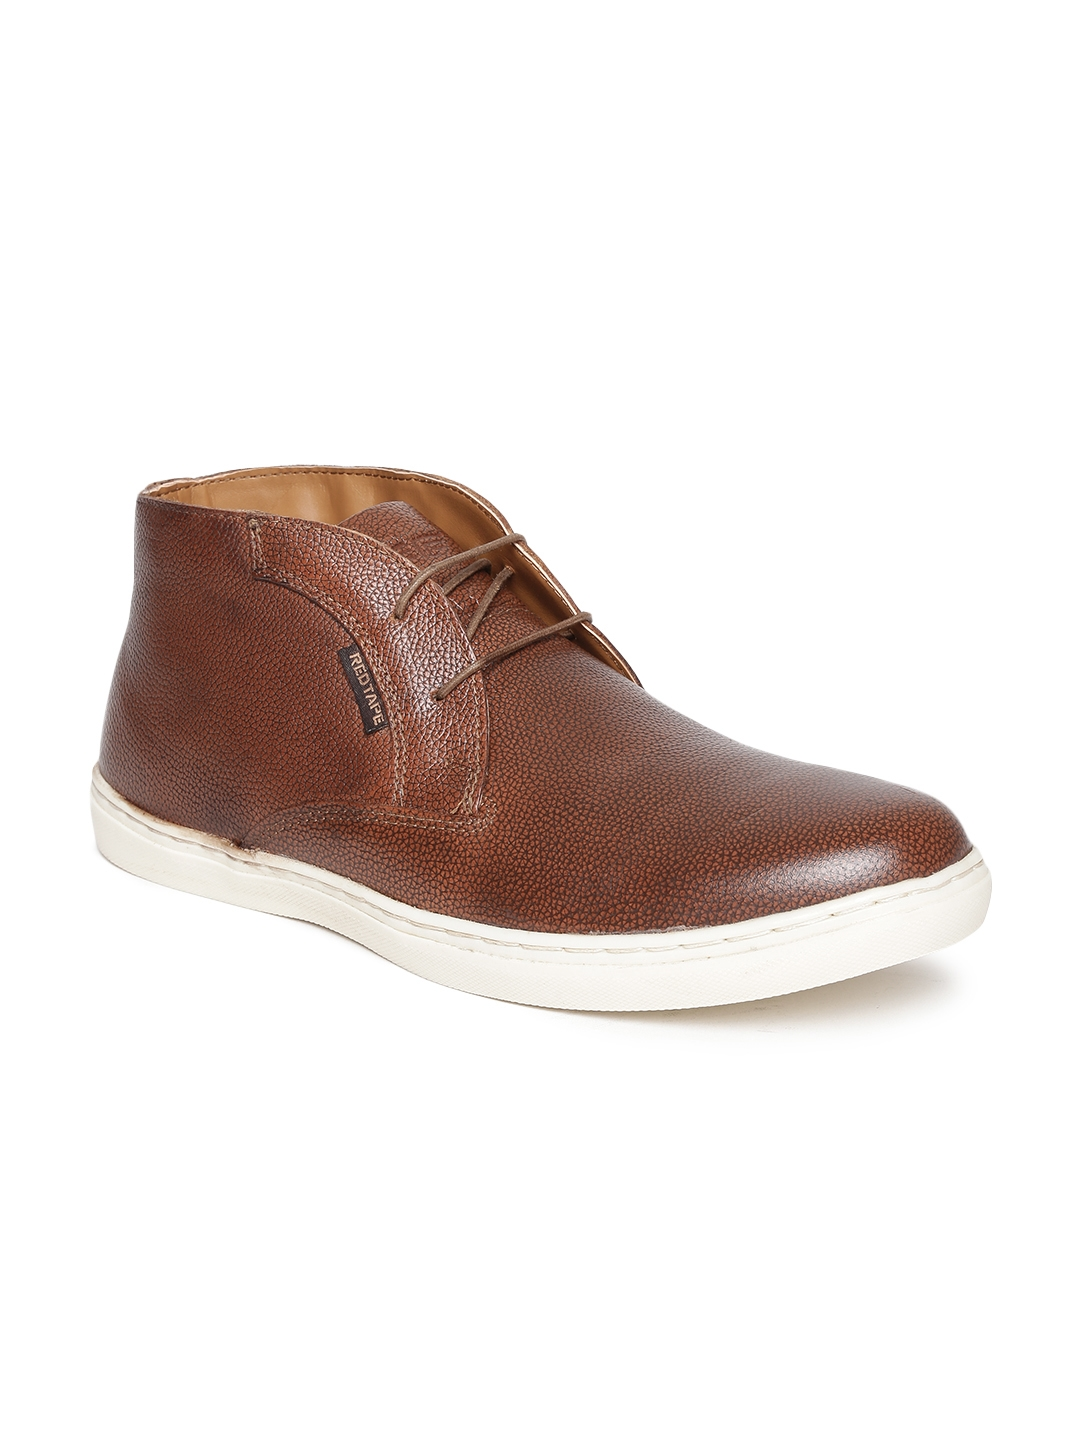 7f2acb5e12b Buy Red Tape Men Brown Genuine Leather Casual Shoes - Casual Shoes ...